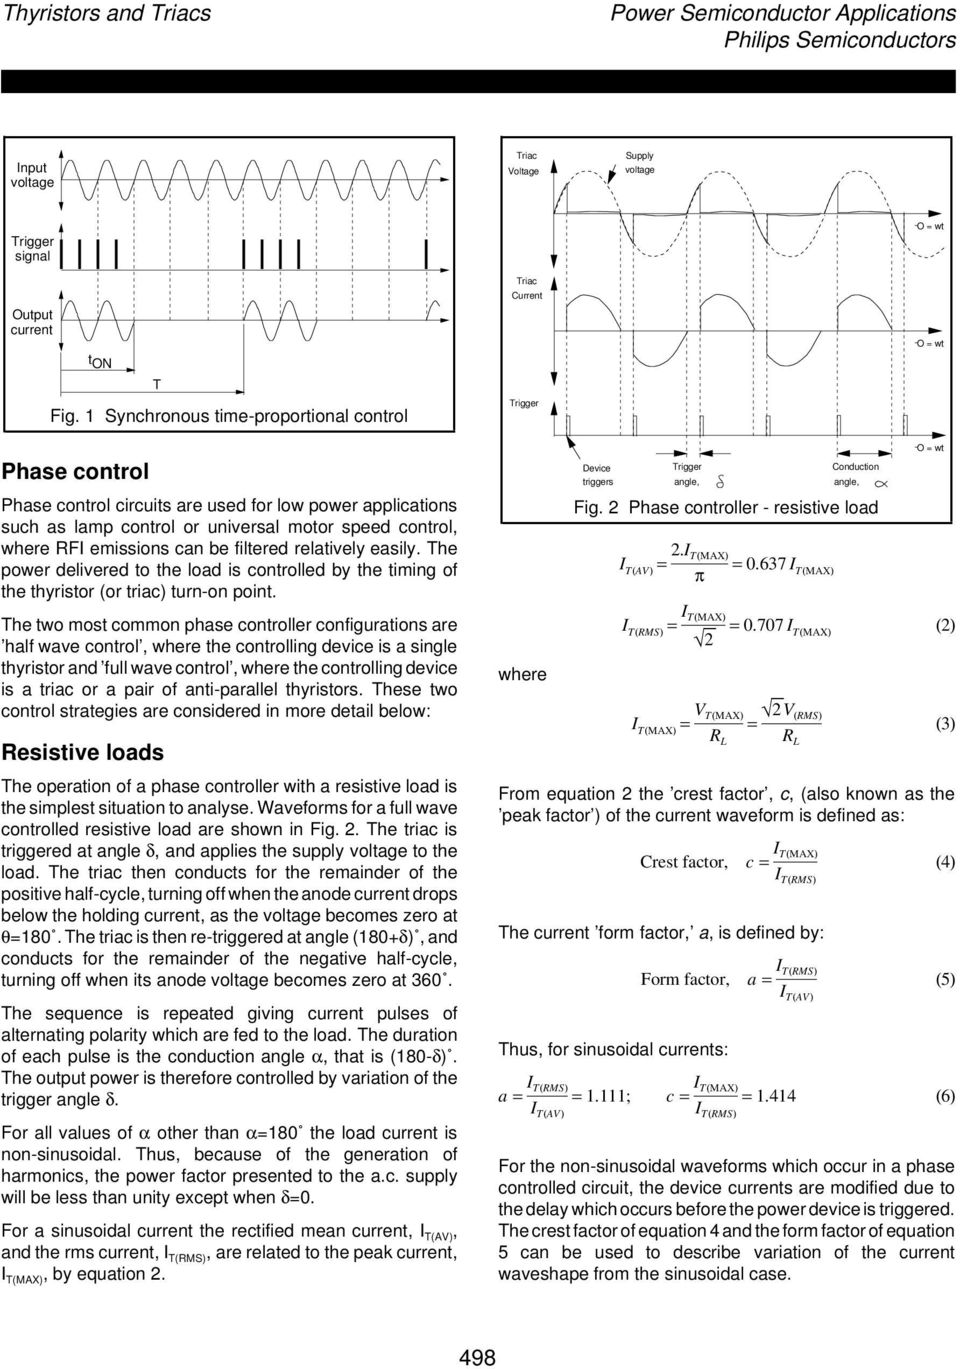 Power Control With Thyristors And Triacs Pdf Basic Snubber Circuit Used A Triac Filtered Relatively Easily The Delivered To Load Is Controlled By Timing Of